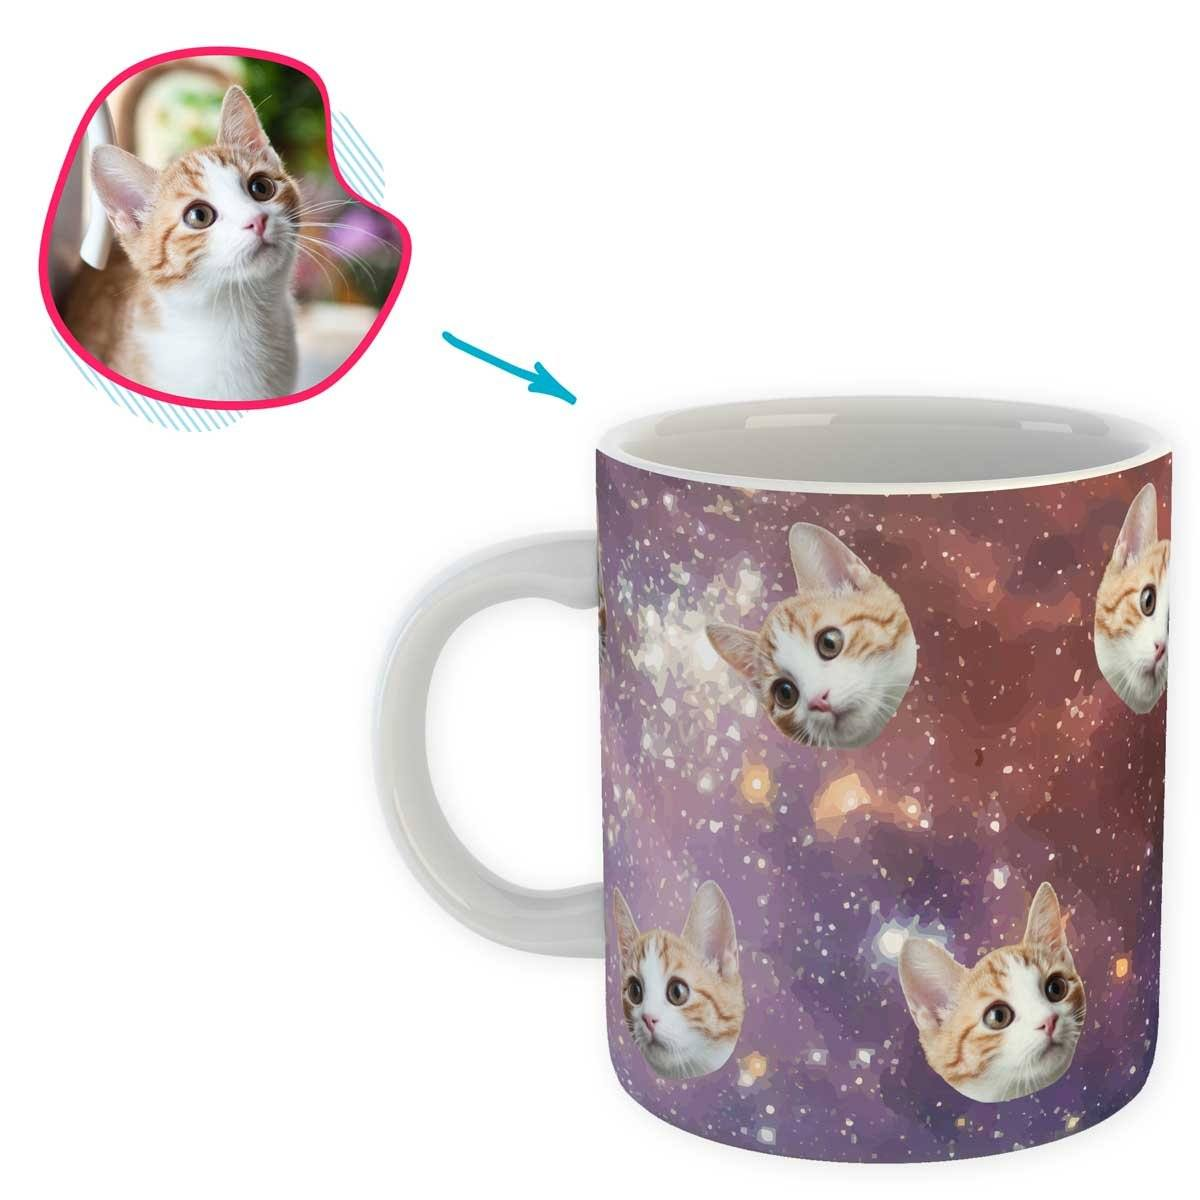 galaxy Galaxy mug personalized with photo of face printed on it